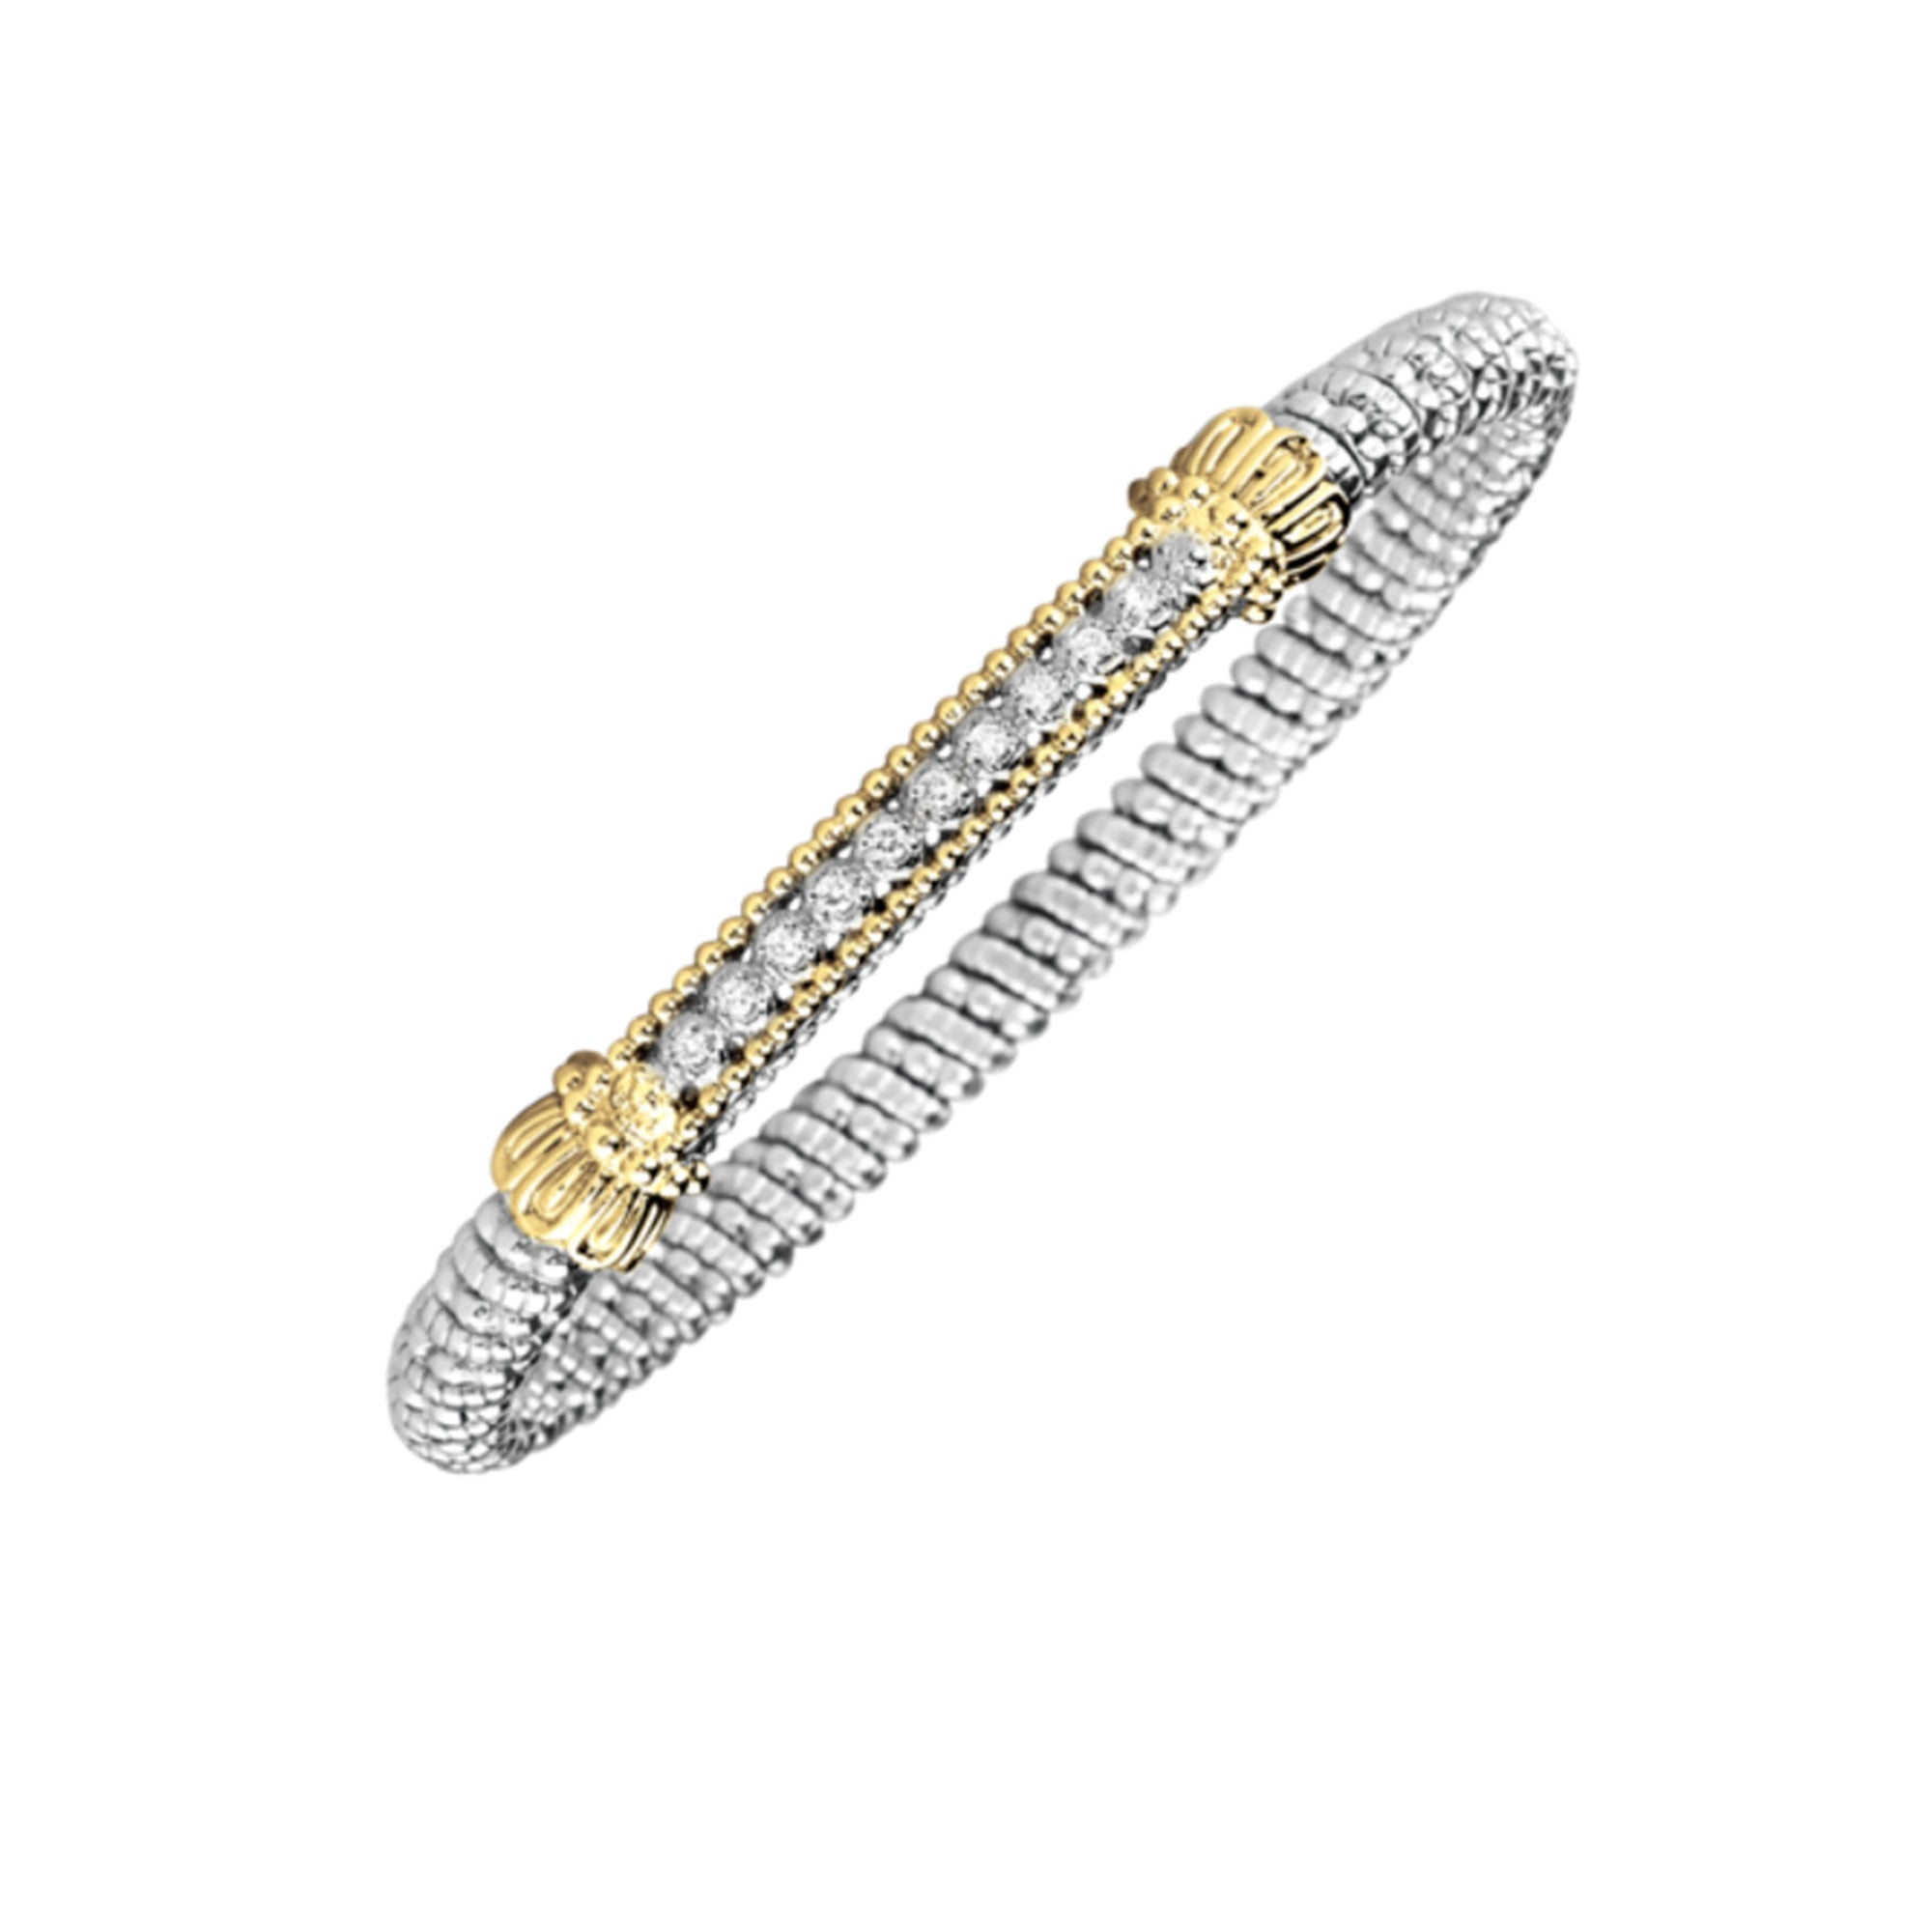 Medium Diamond Bar Bracelet by Vahan - Talisman Collection Fine Jewelers